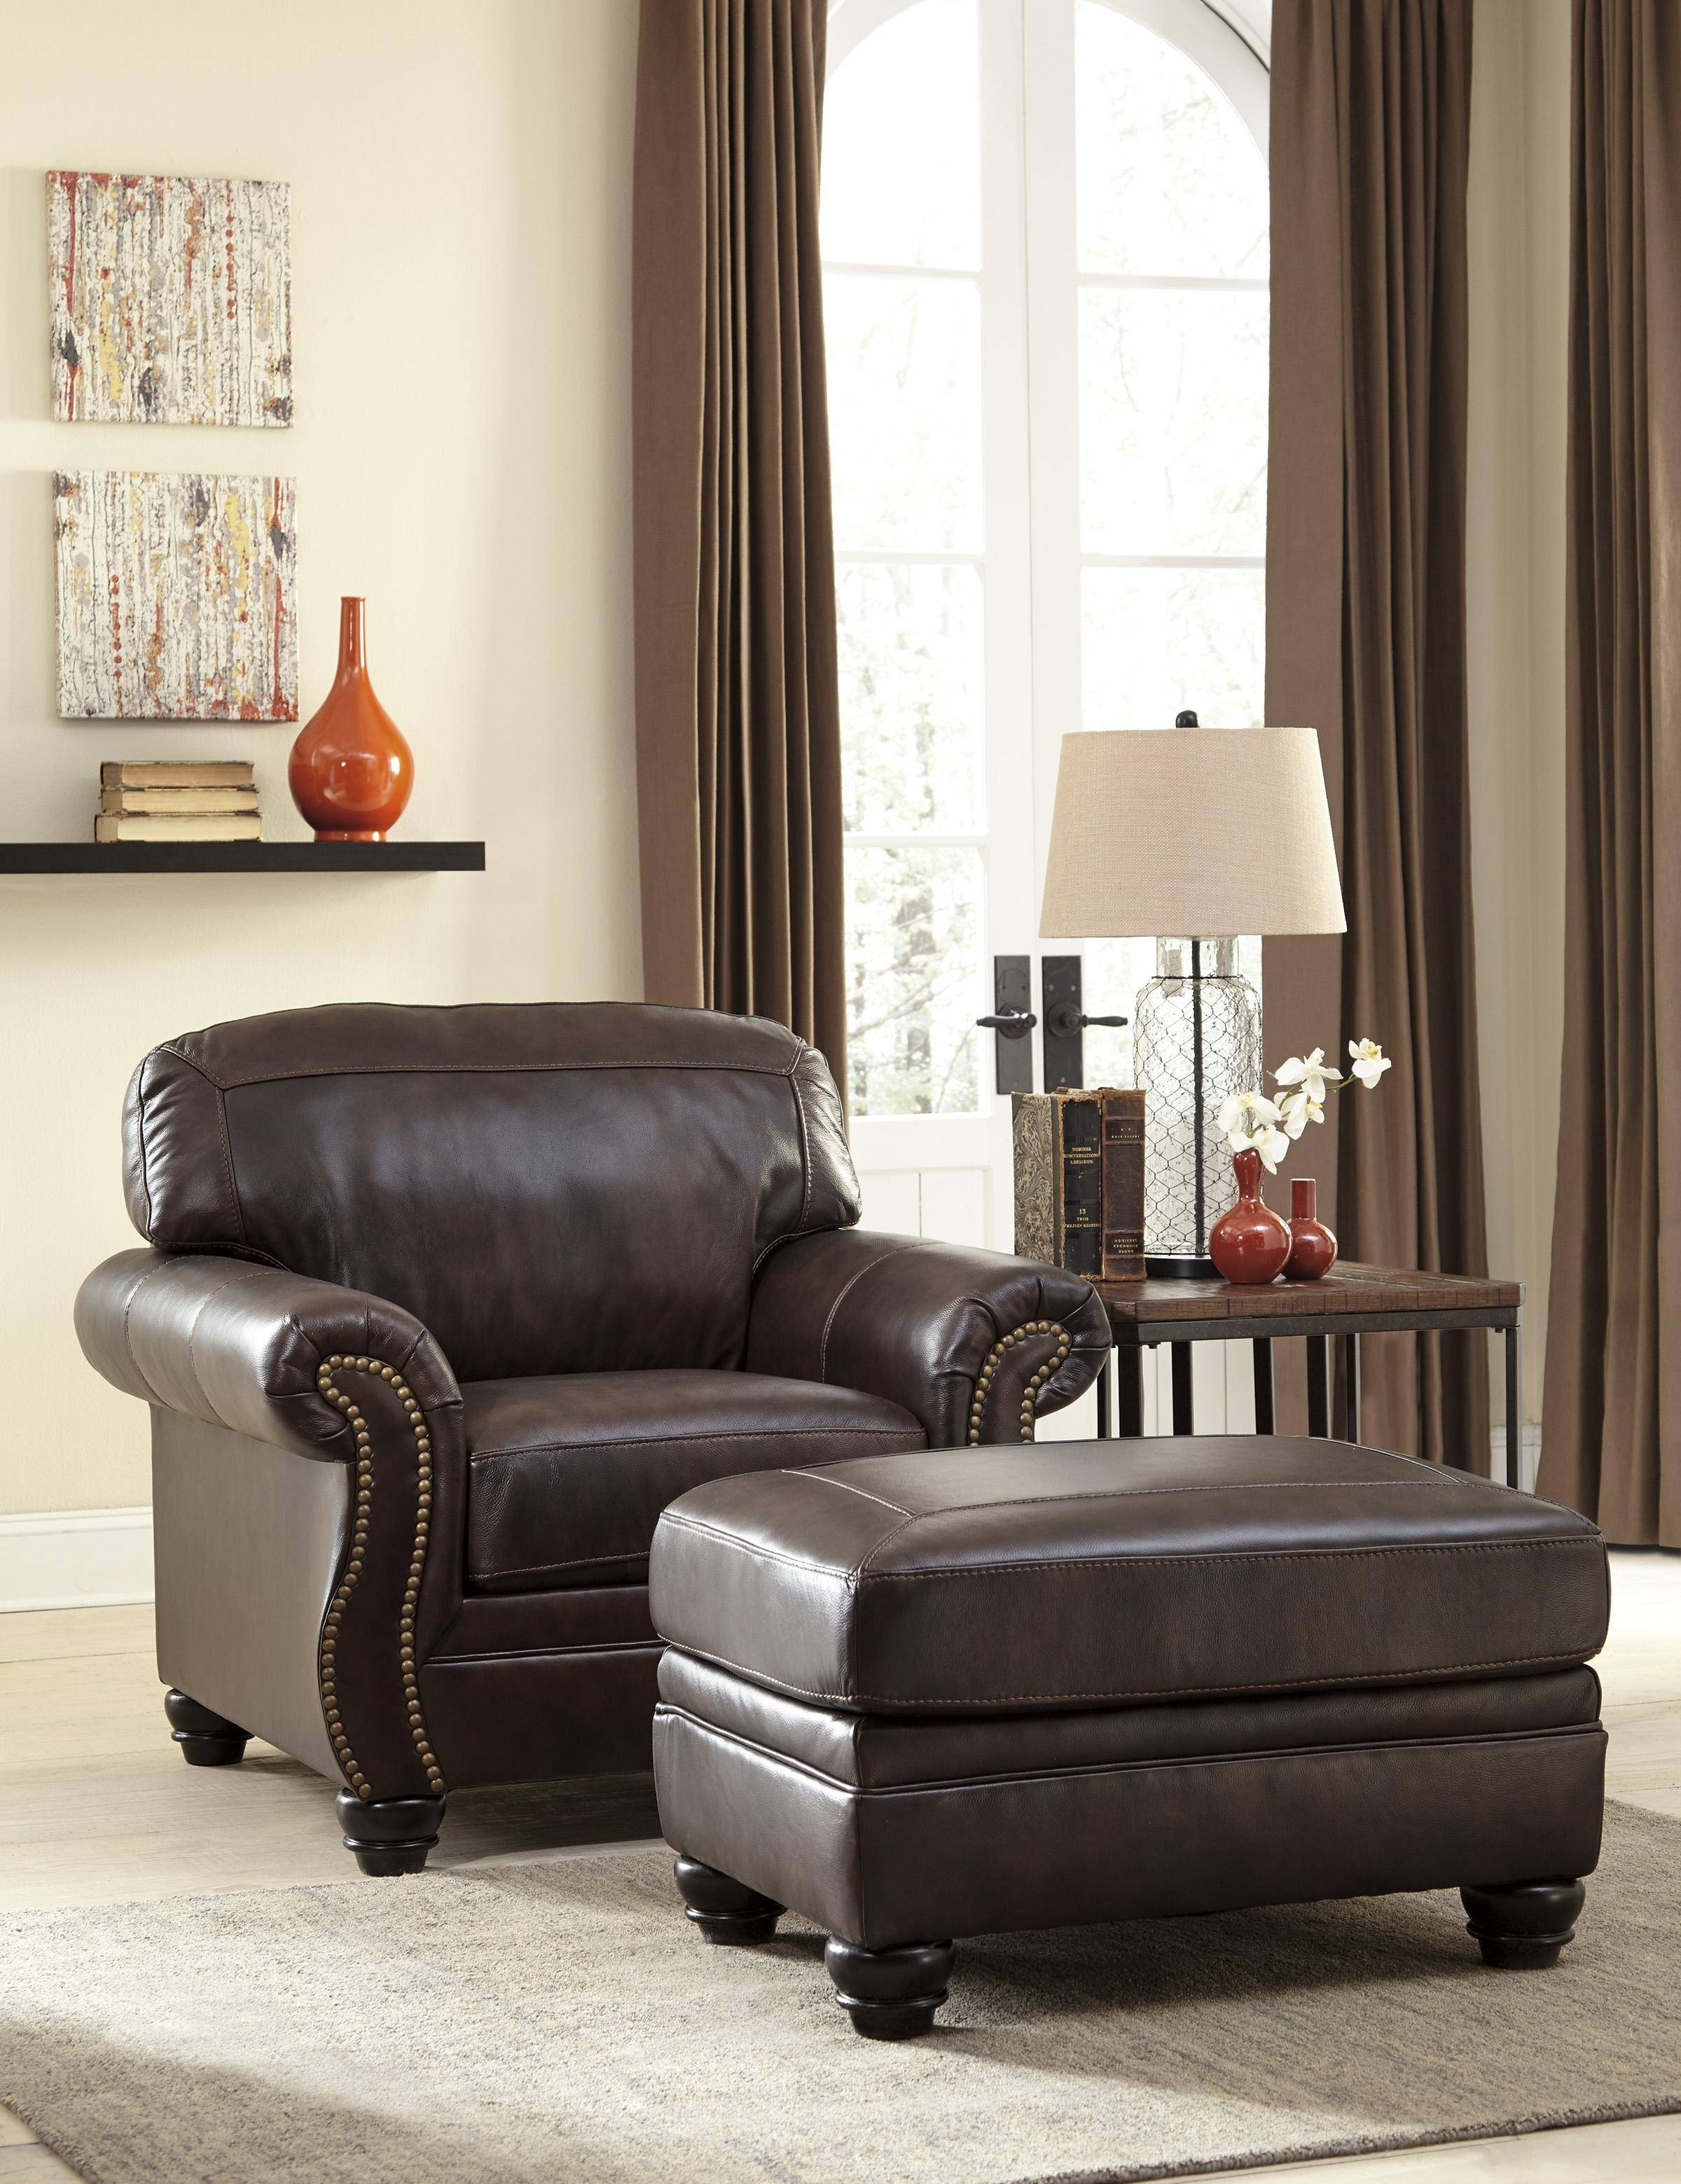 Ashley Bristan Living Room Chair With Ottoman In Walnut